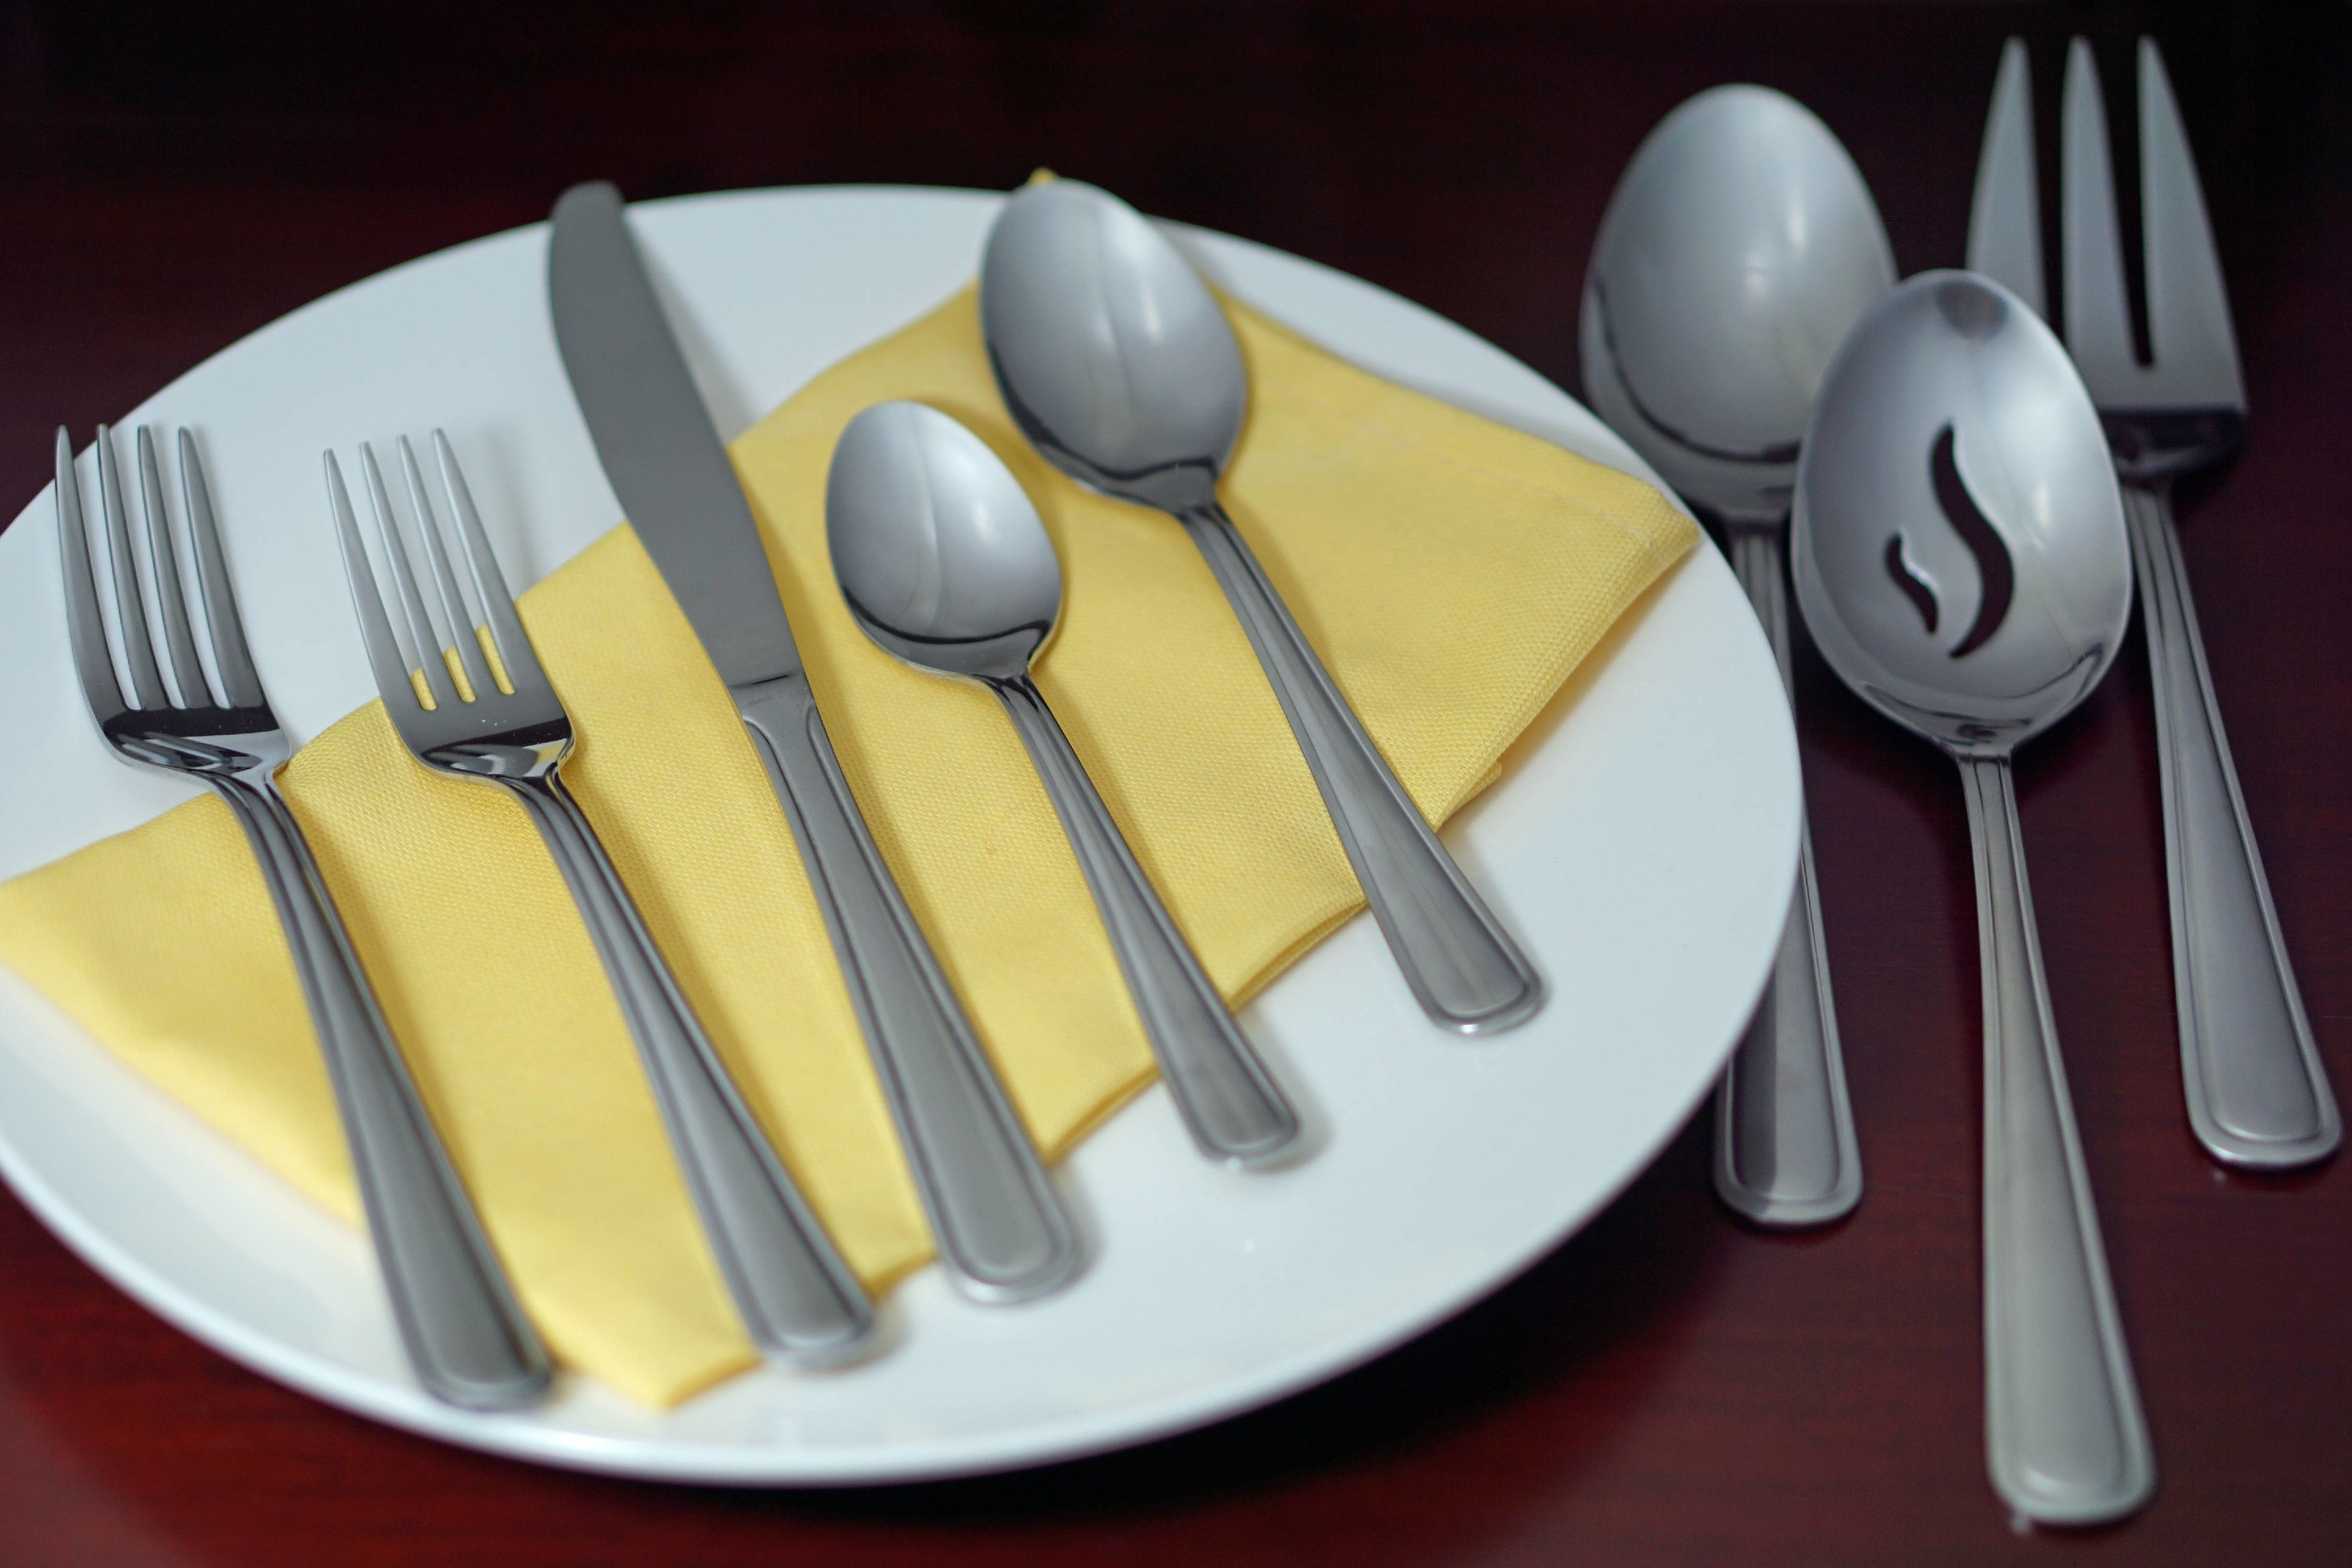 The45-piece stainless steel flatware set